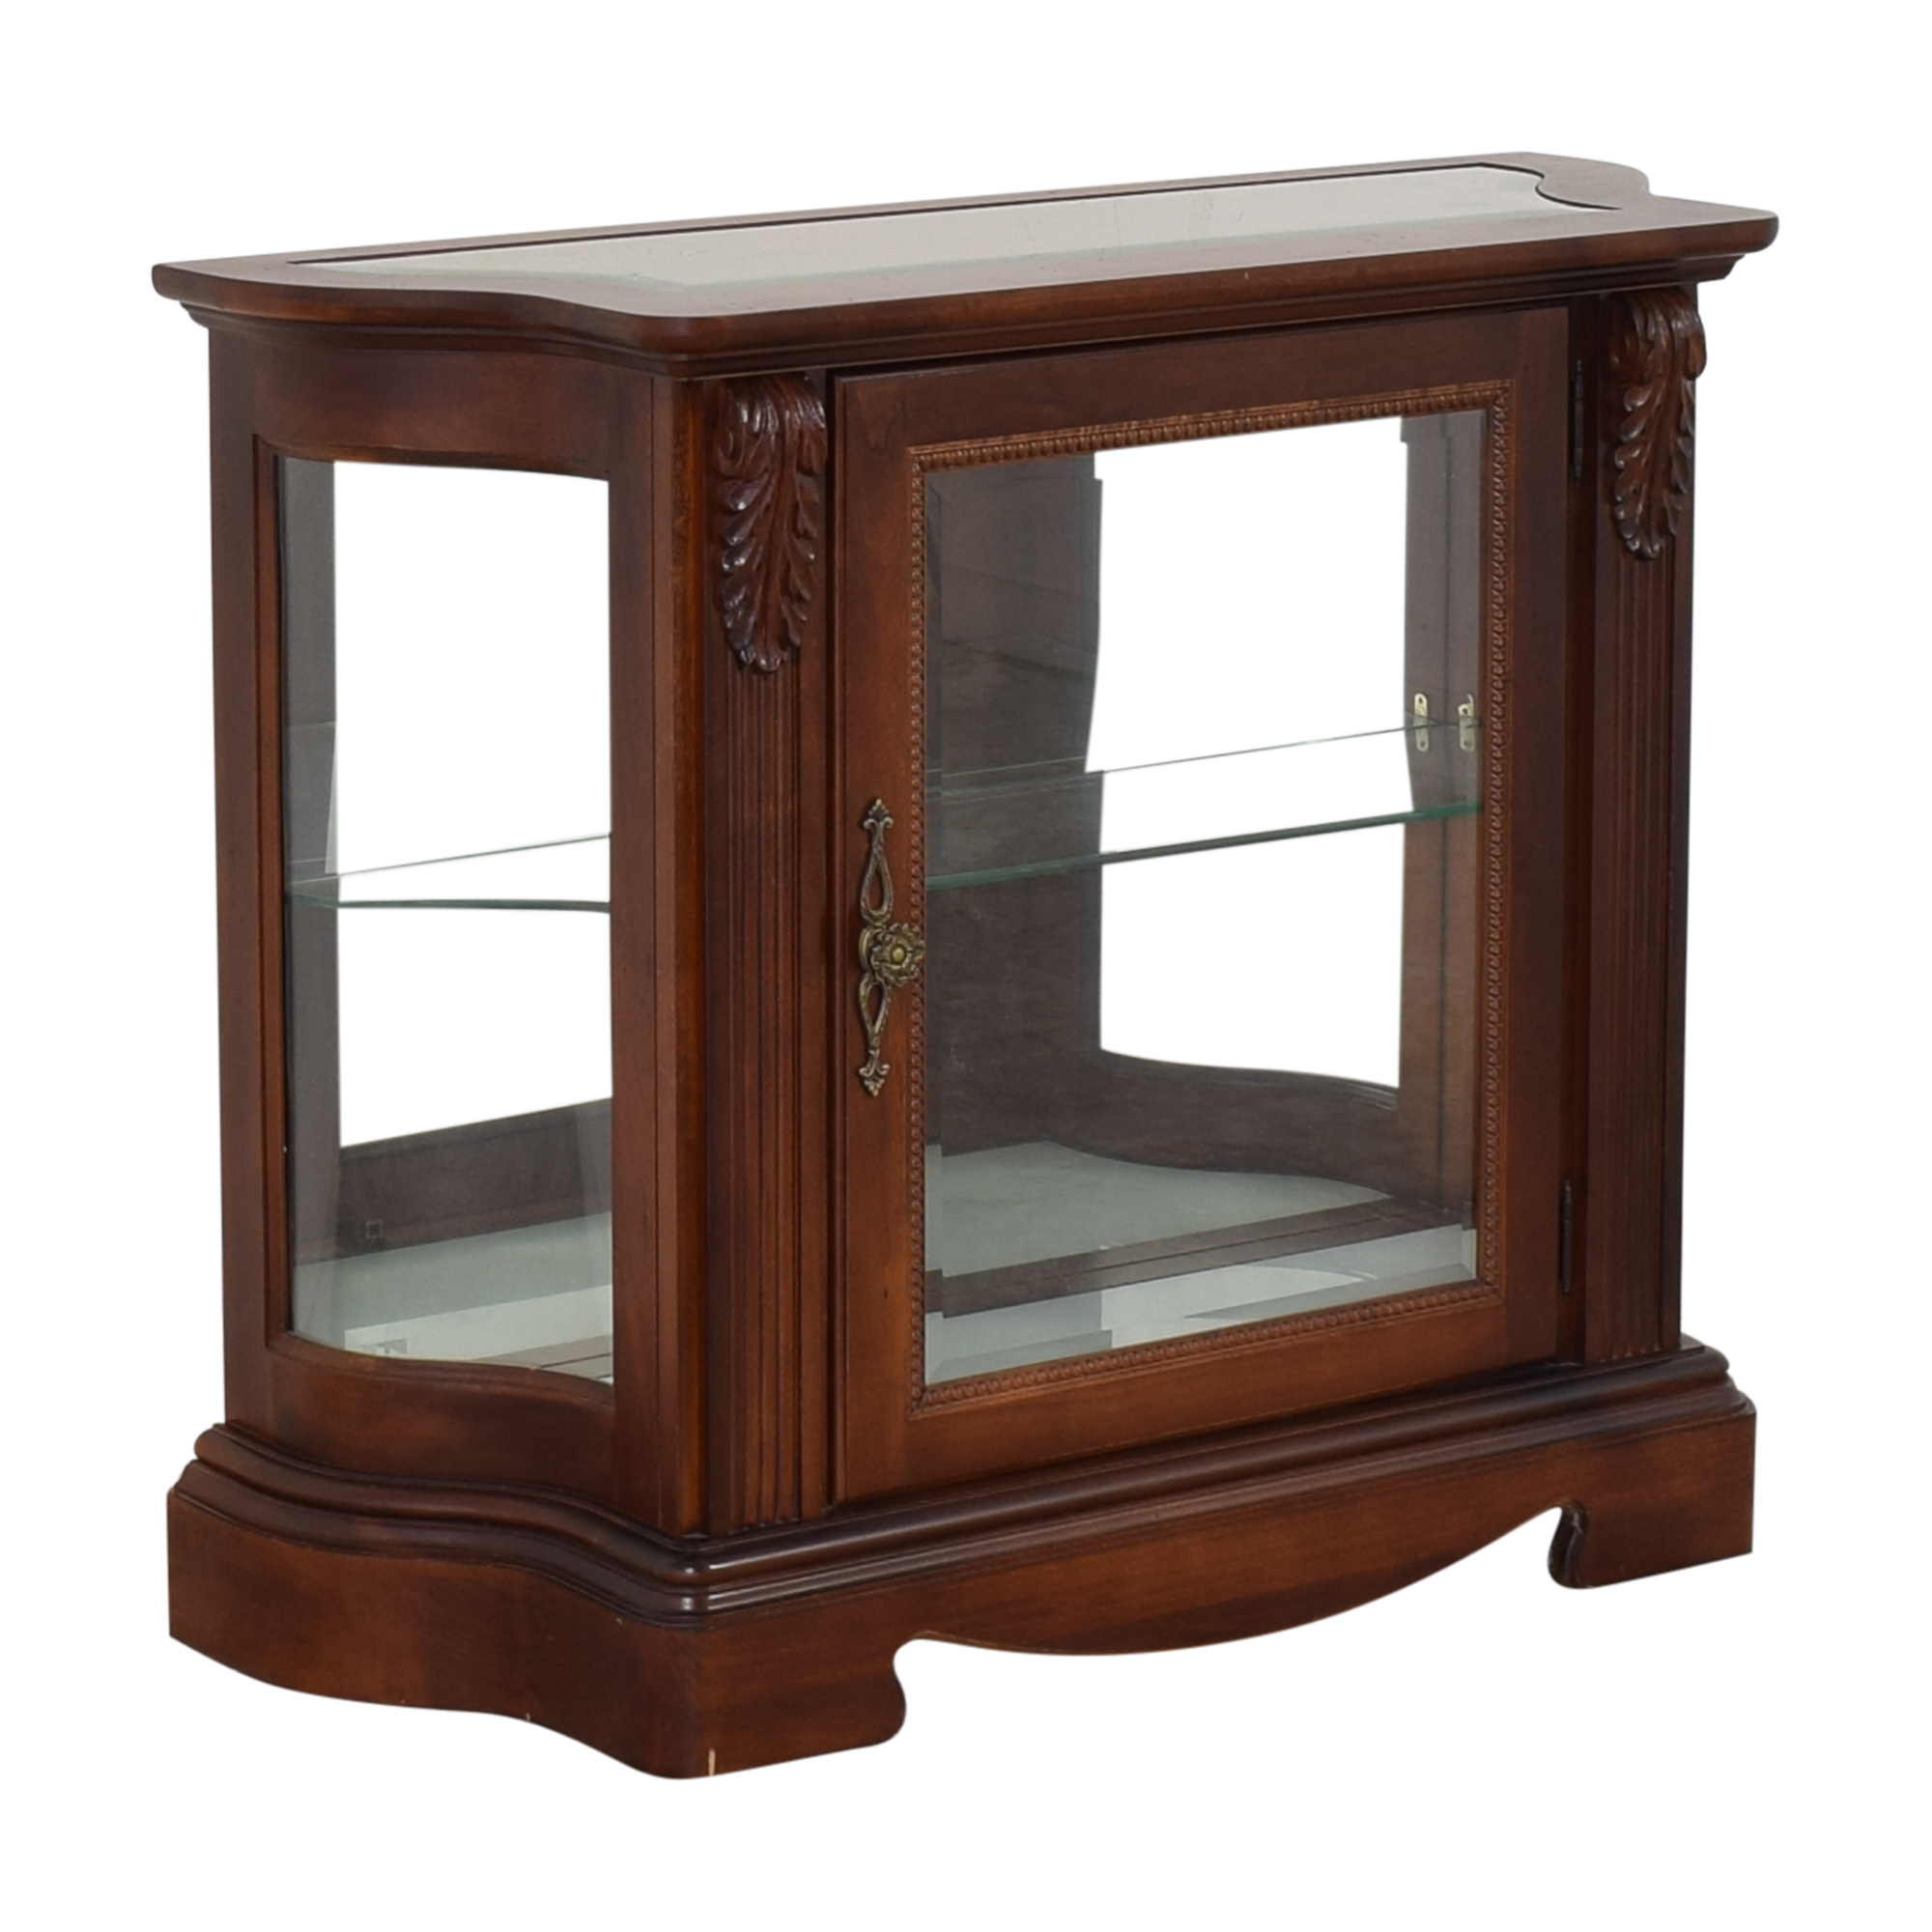 Thomasville Display Accent Table / Cabinets & Sideboards